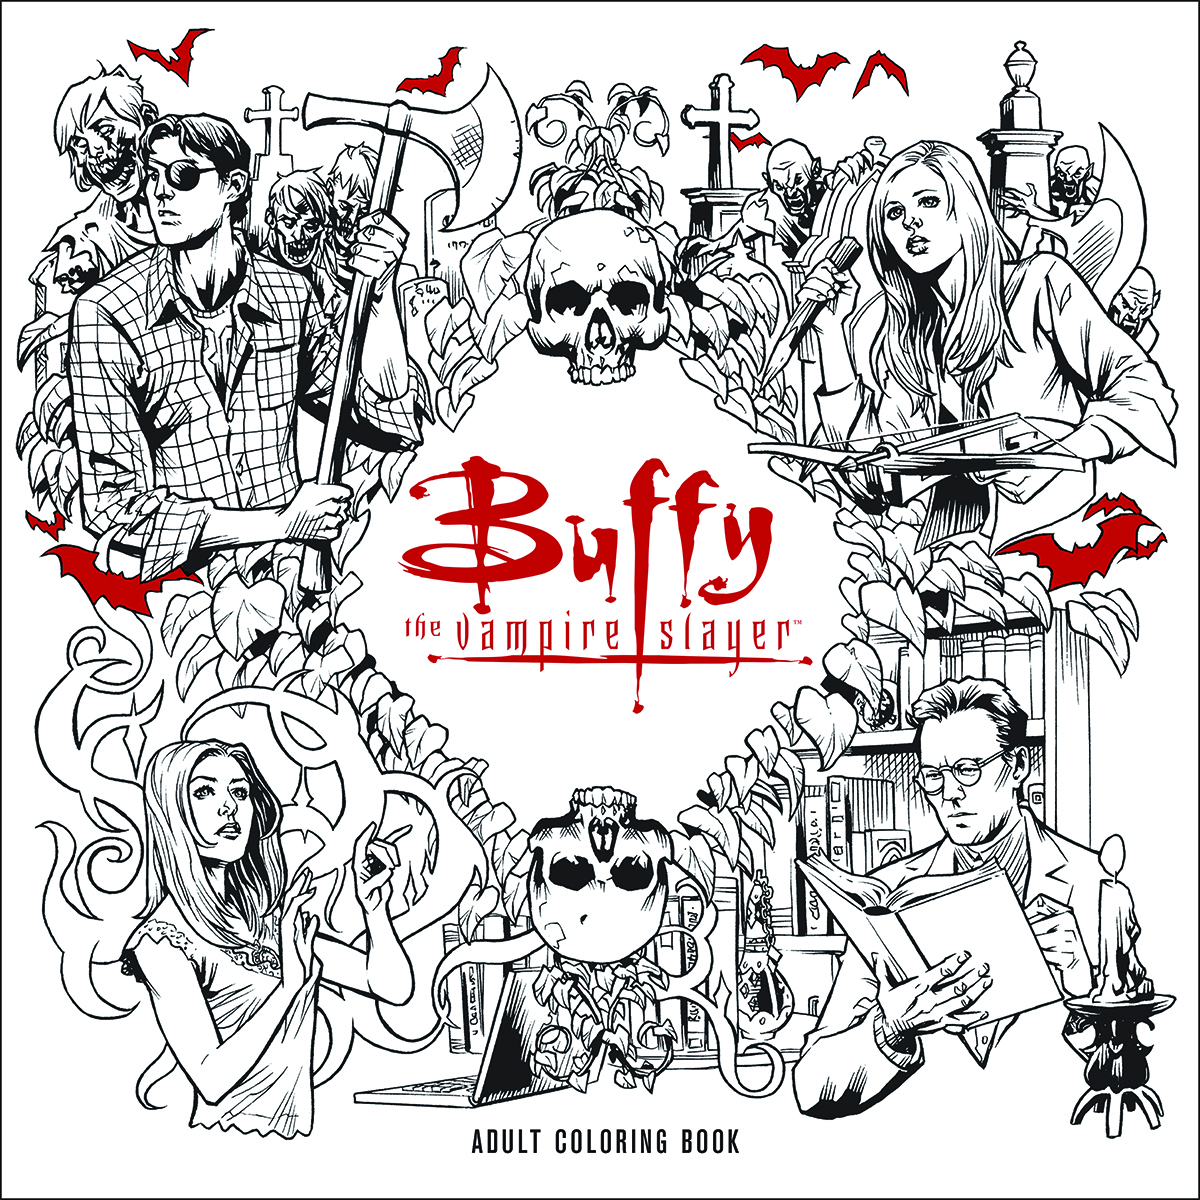 BTVS ADULT COLORING BOOK TP (AUG160020)